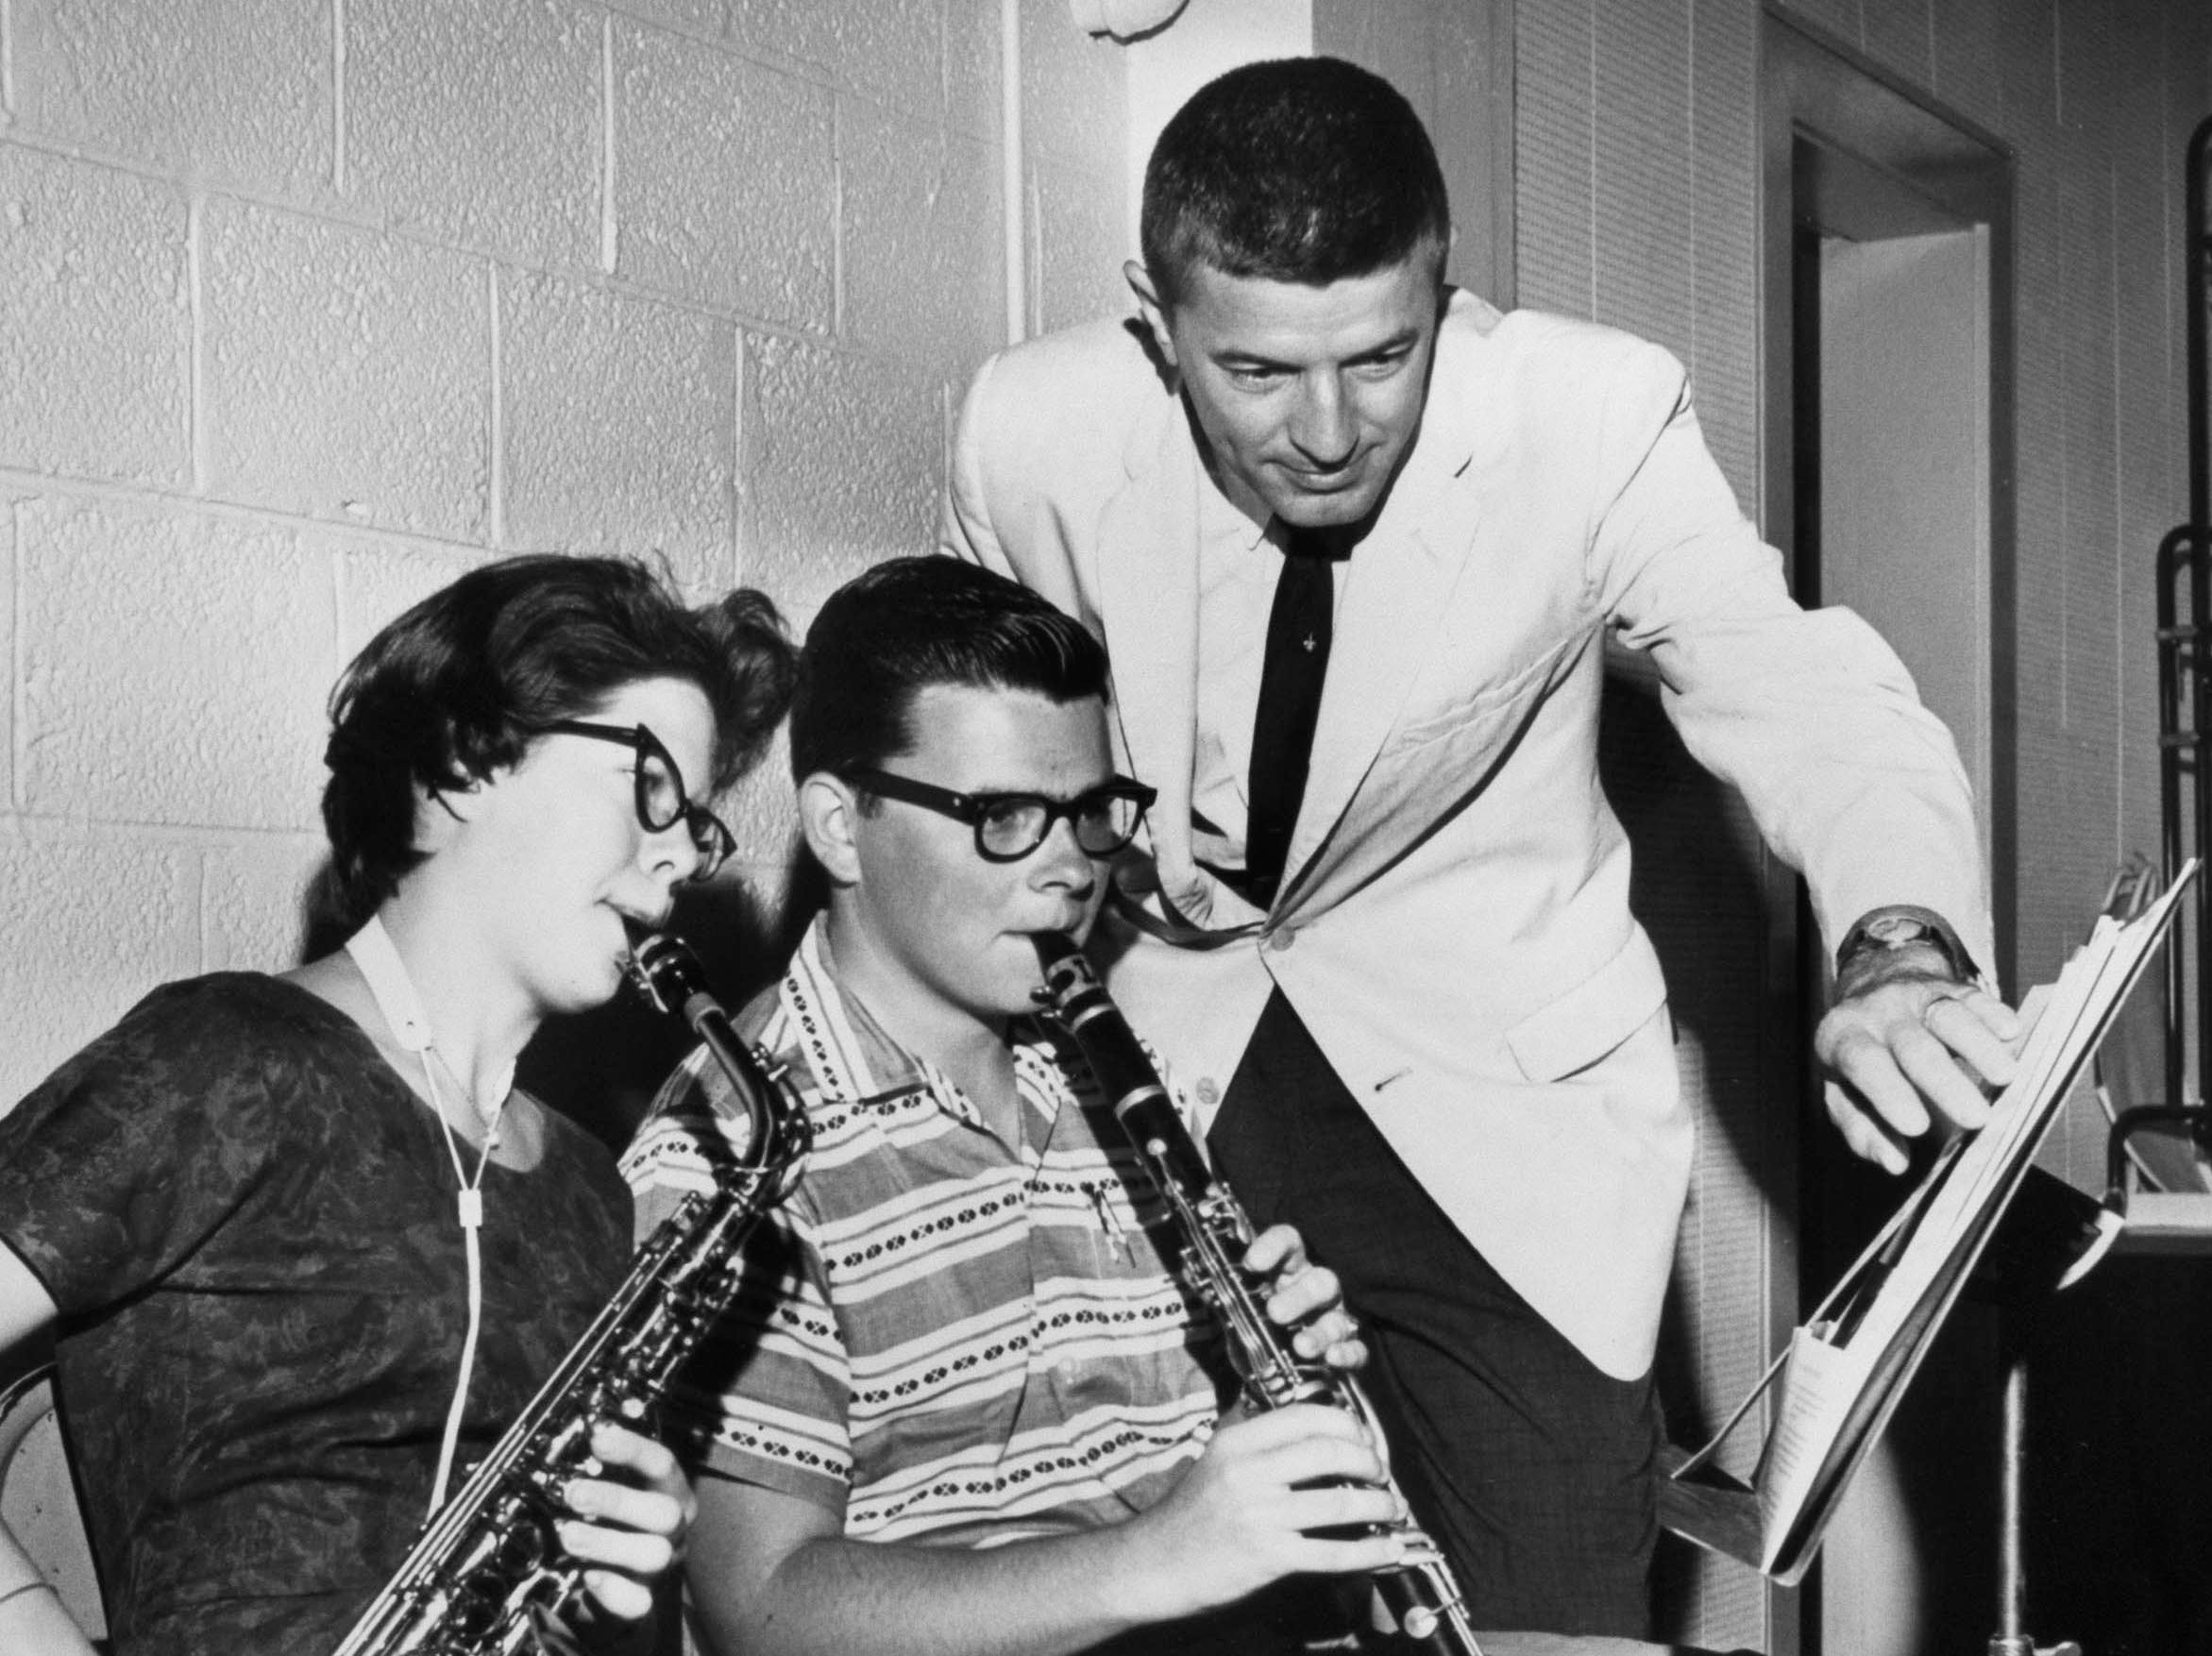 University of Tennessee Pride of the Southland Band Director Dr. W. J. Julian poses for a photo on July 25, 1961, with Edna Mantz of Clinton High School and Joe McNew of Young High School.